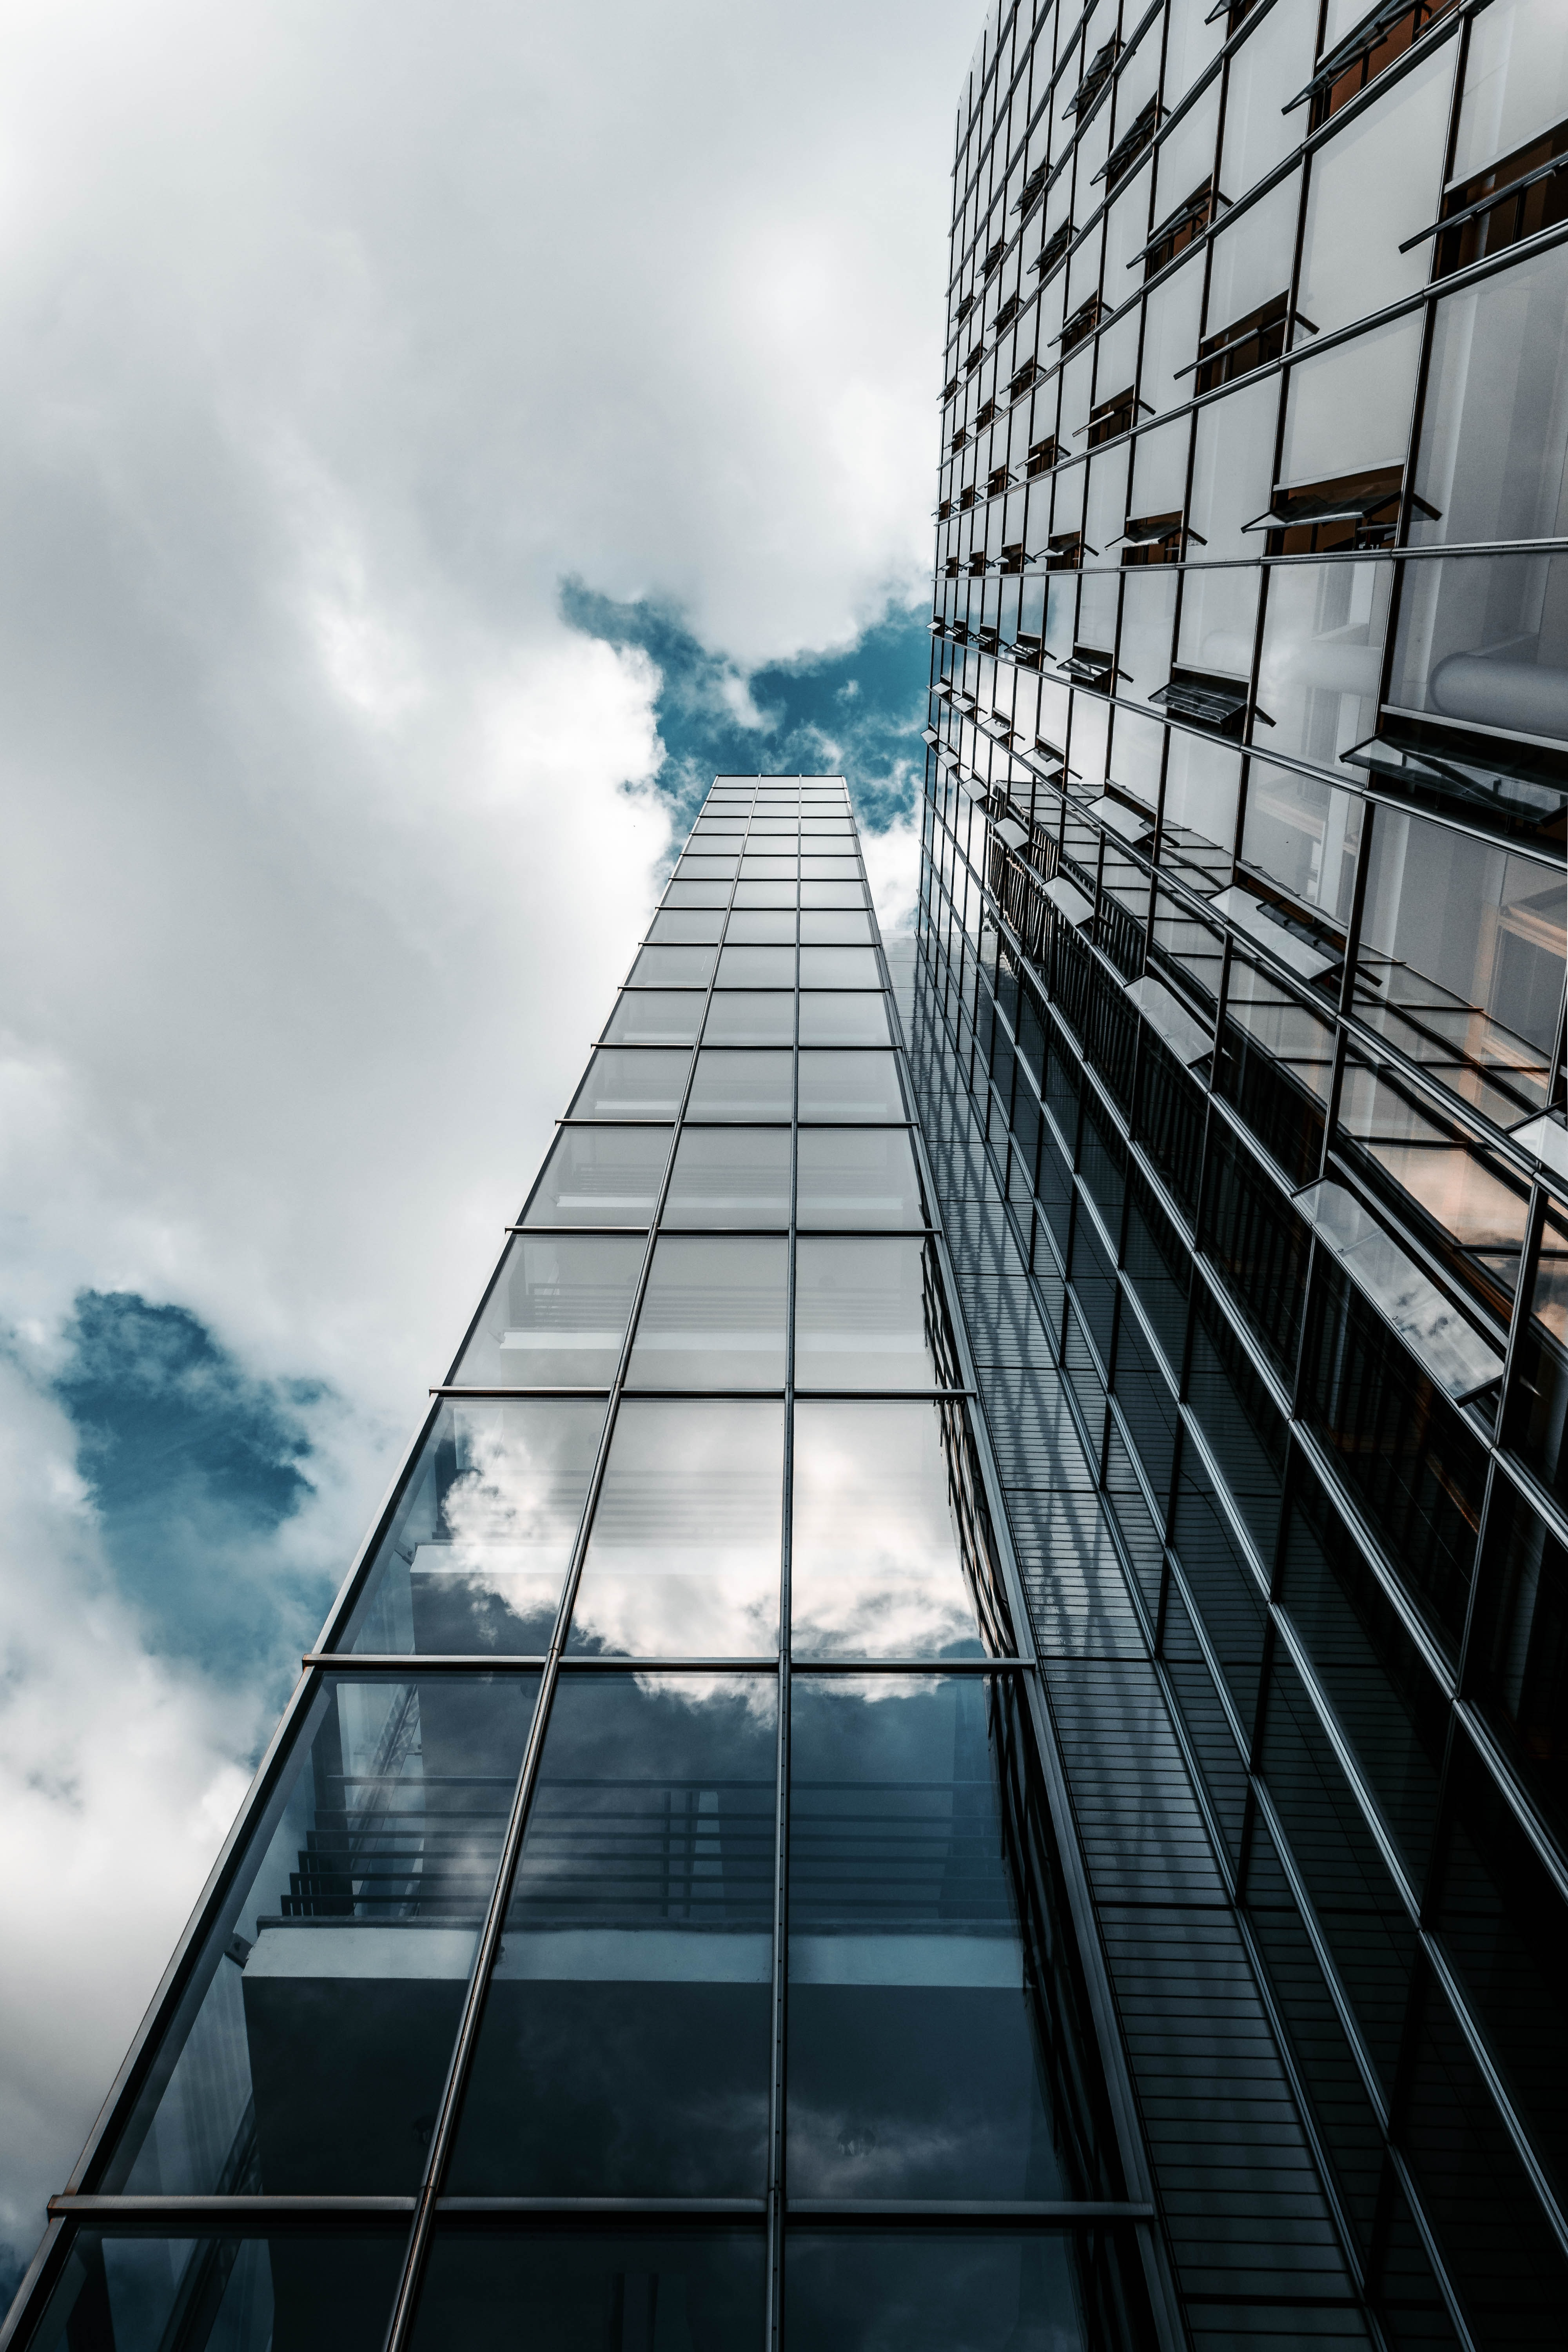 Financial Services Are Finding a Safe Home in the Cloud